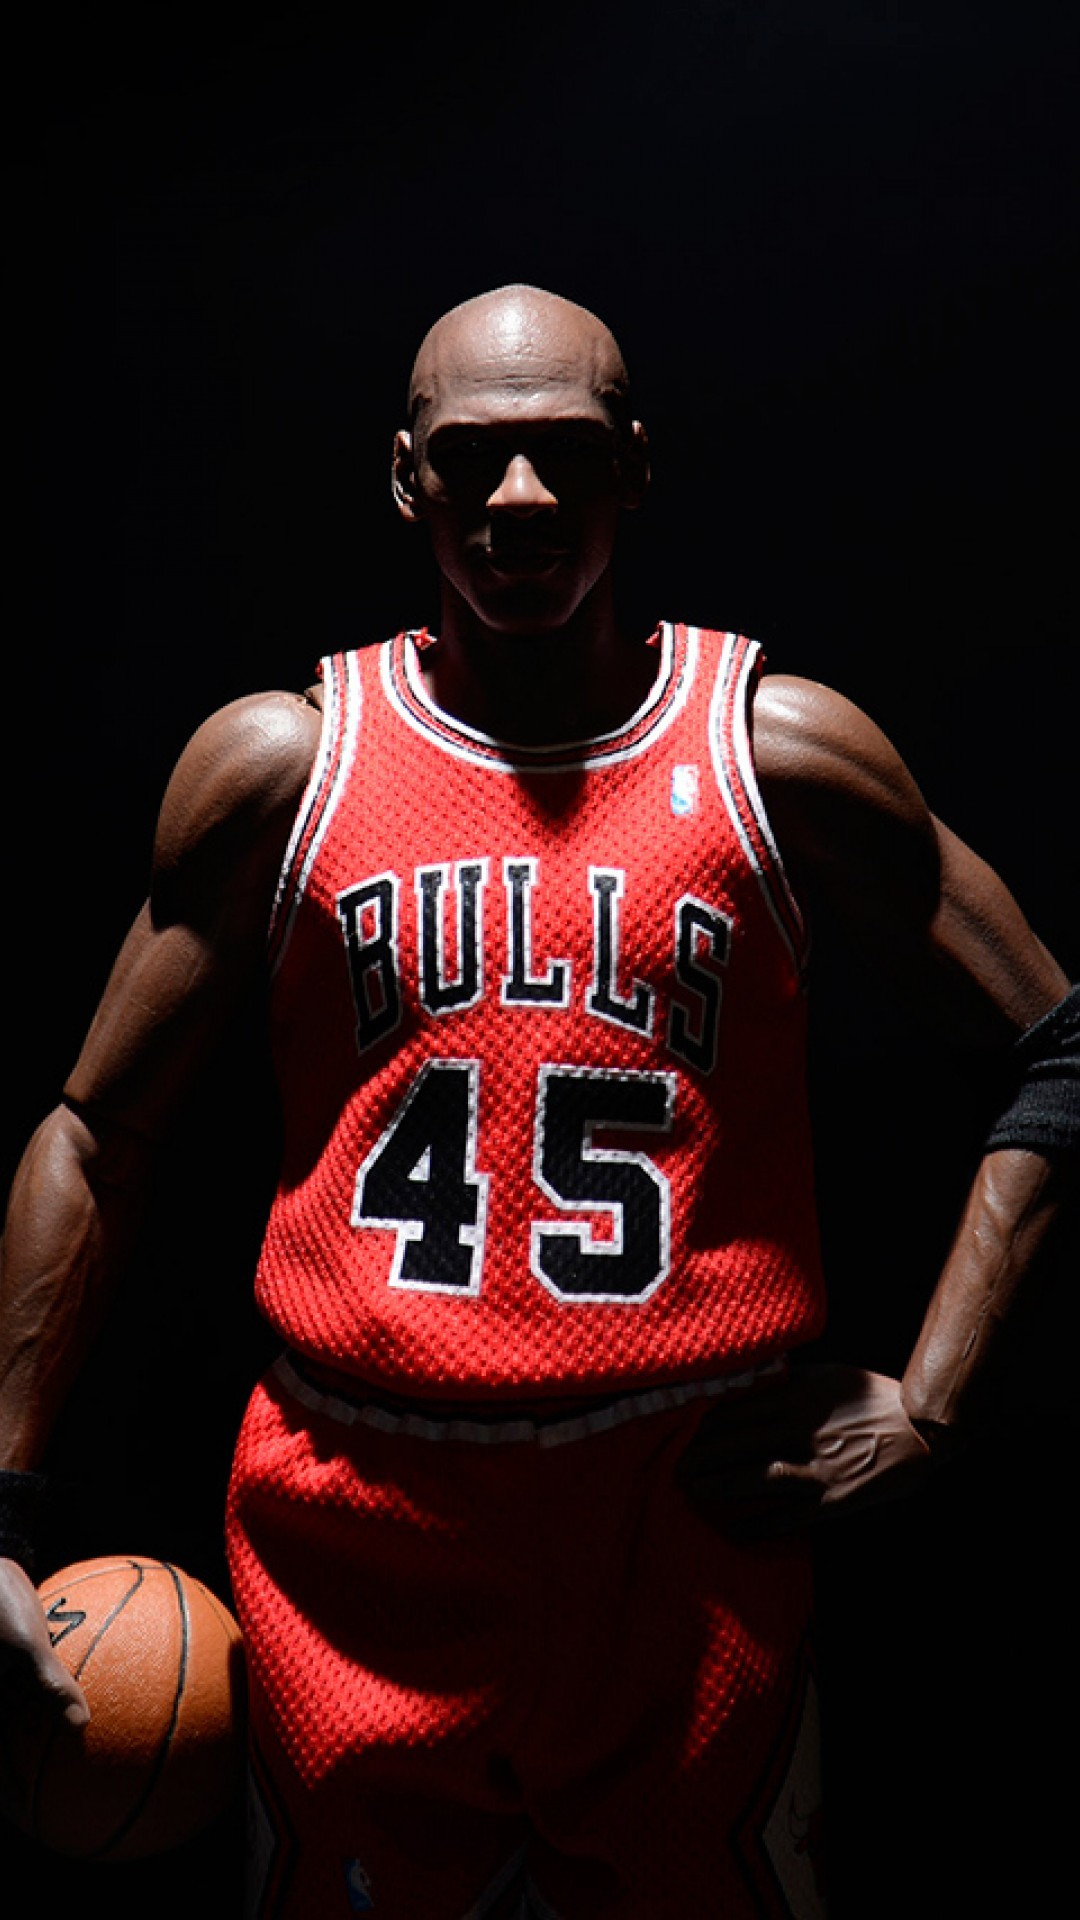 Jordan Iphone Wallpaper Hd 74 Images